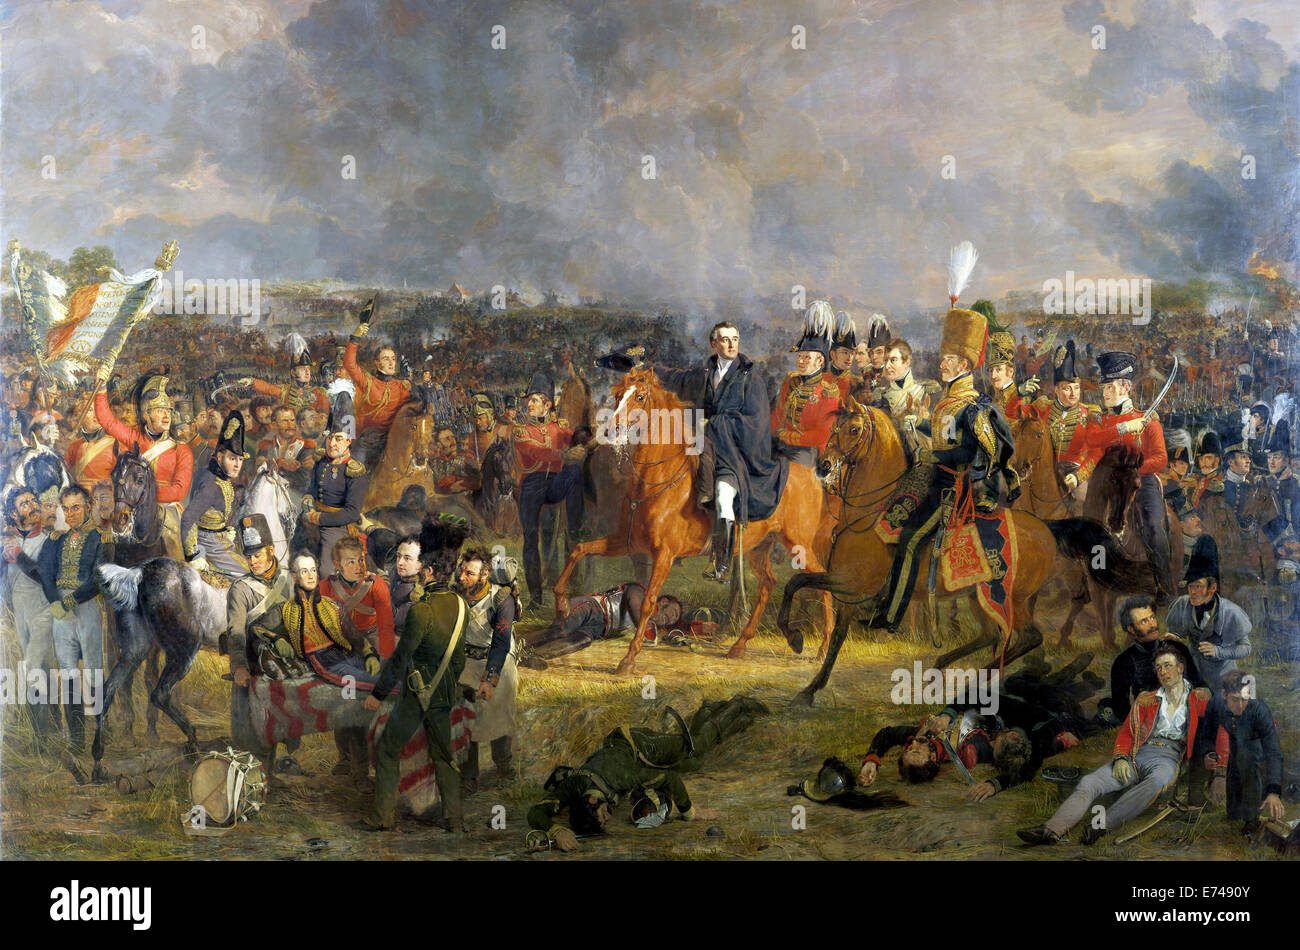 La batalla de Waterloo - por Jan Willem Pieneman, 1824 Foto de stock